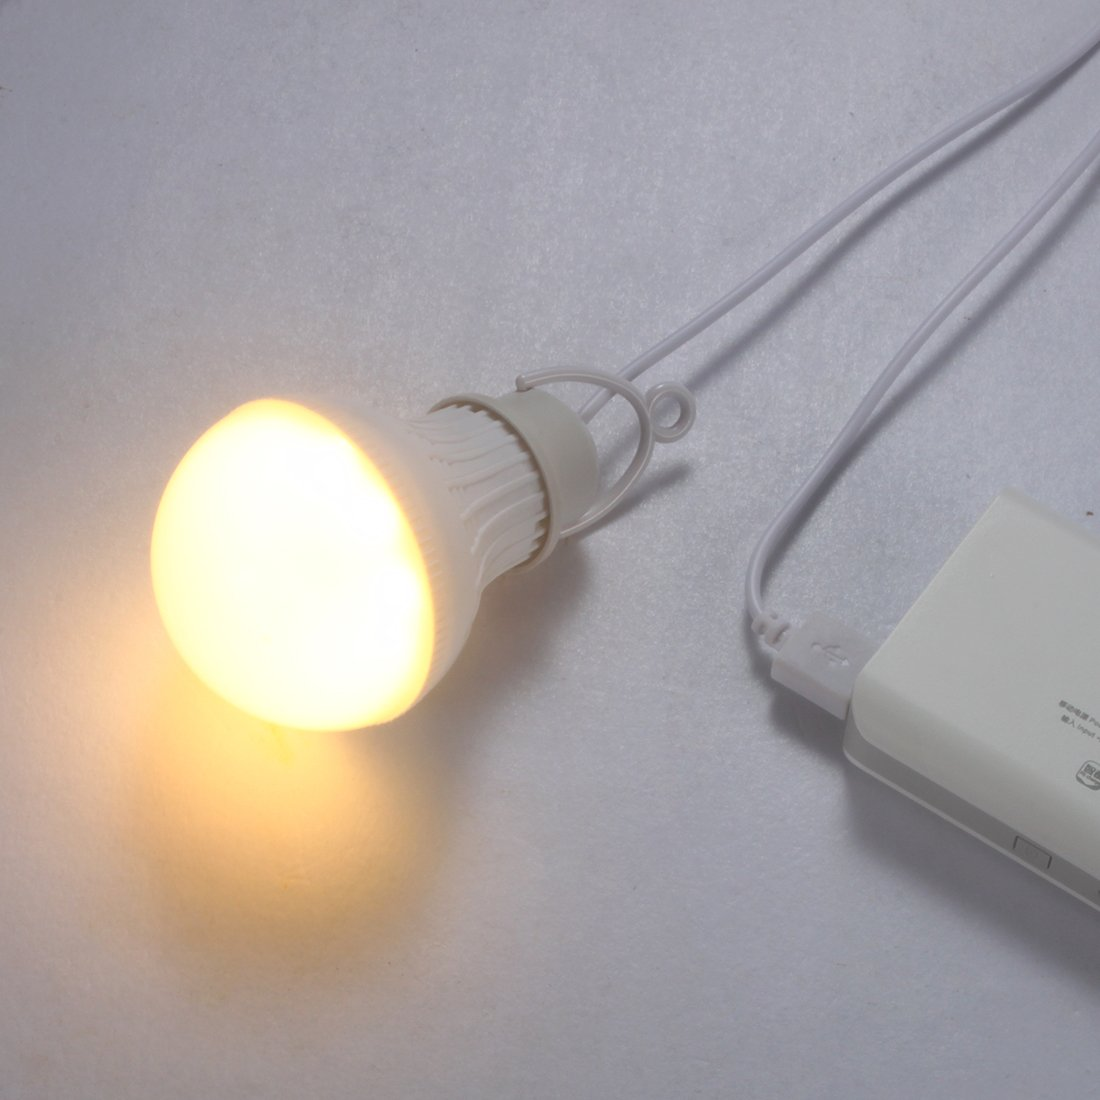 Linght 7W Usb Powered Led Bulb Night Light With Dimmable Switch For Home Read.. 8